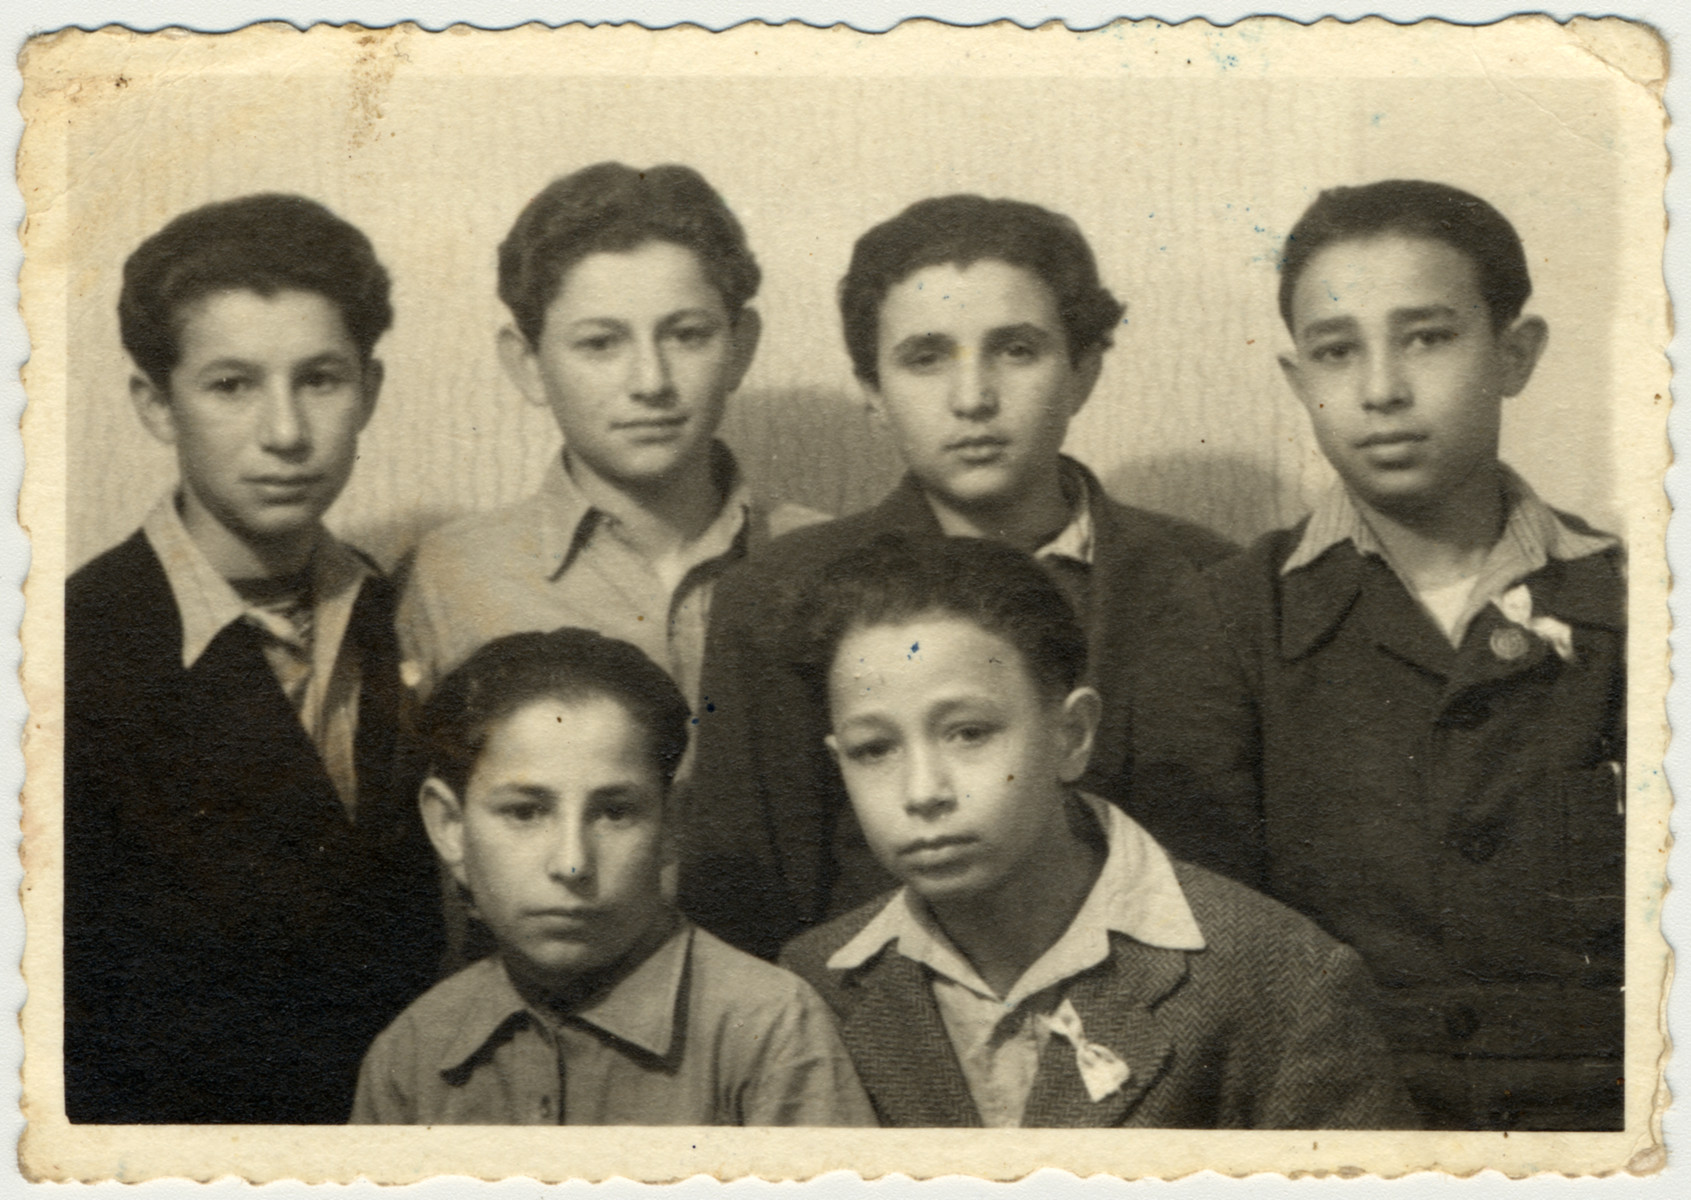 Studio portrait of a group of teenagers in the Rosenheim displaced persons' camp.  Pictured in the back row from left to right are Motle Goldfinger, Tzvi Brill, unknown, Aaron Miller.  Seated in front of Aaron Miller is his brother.